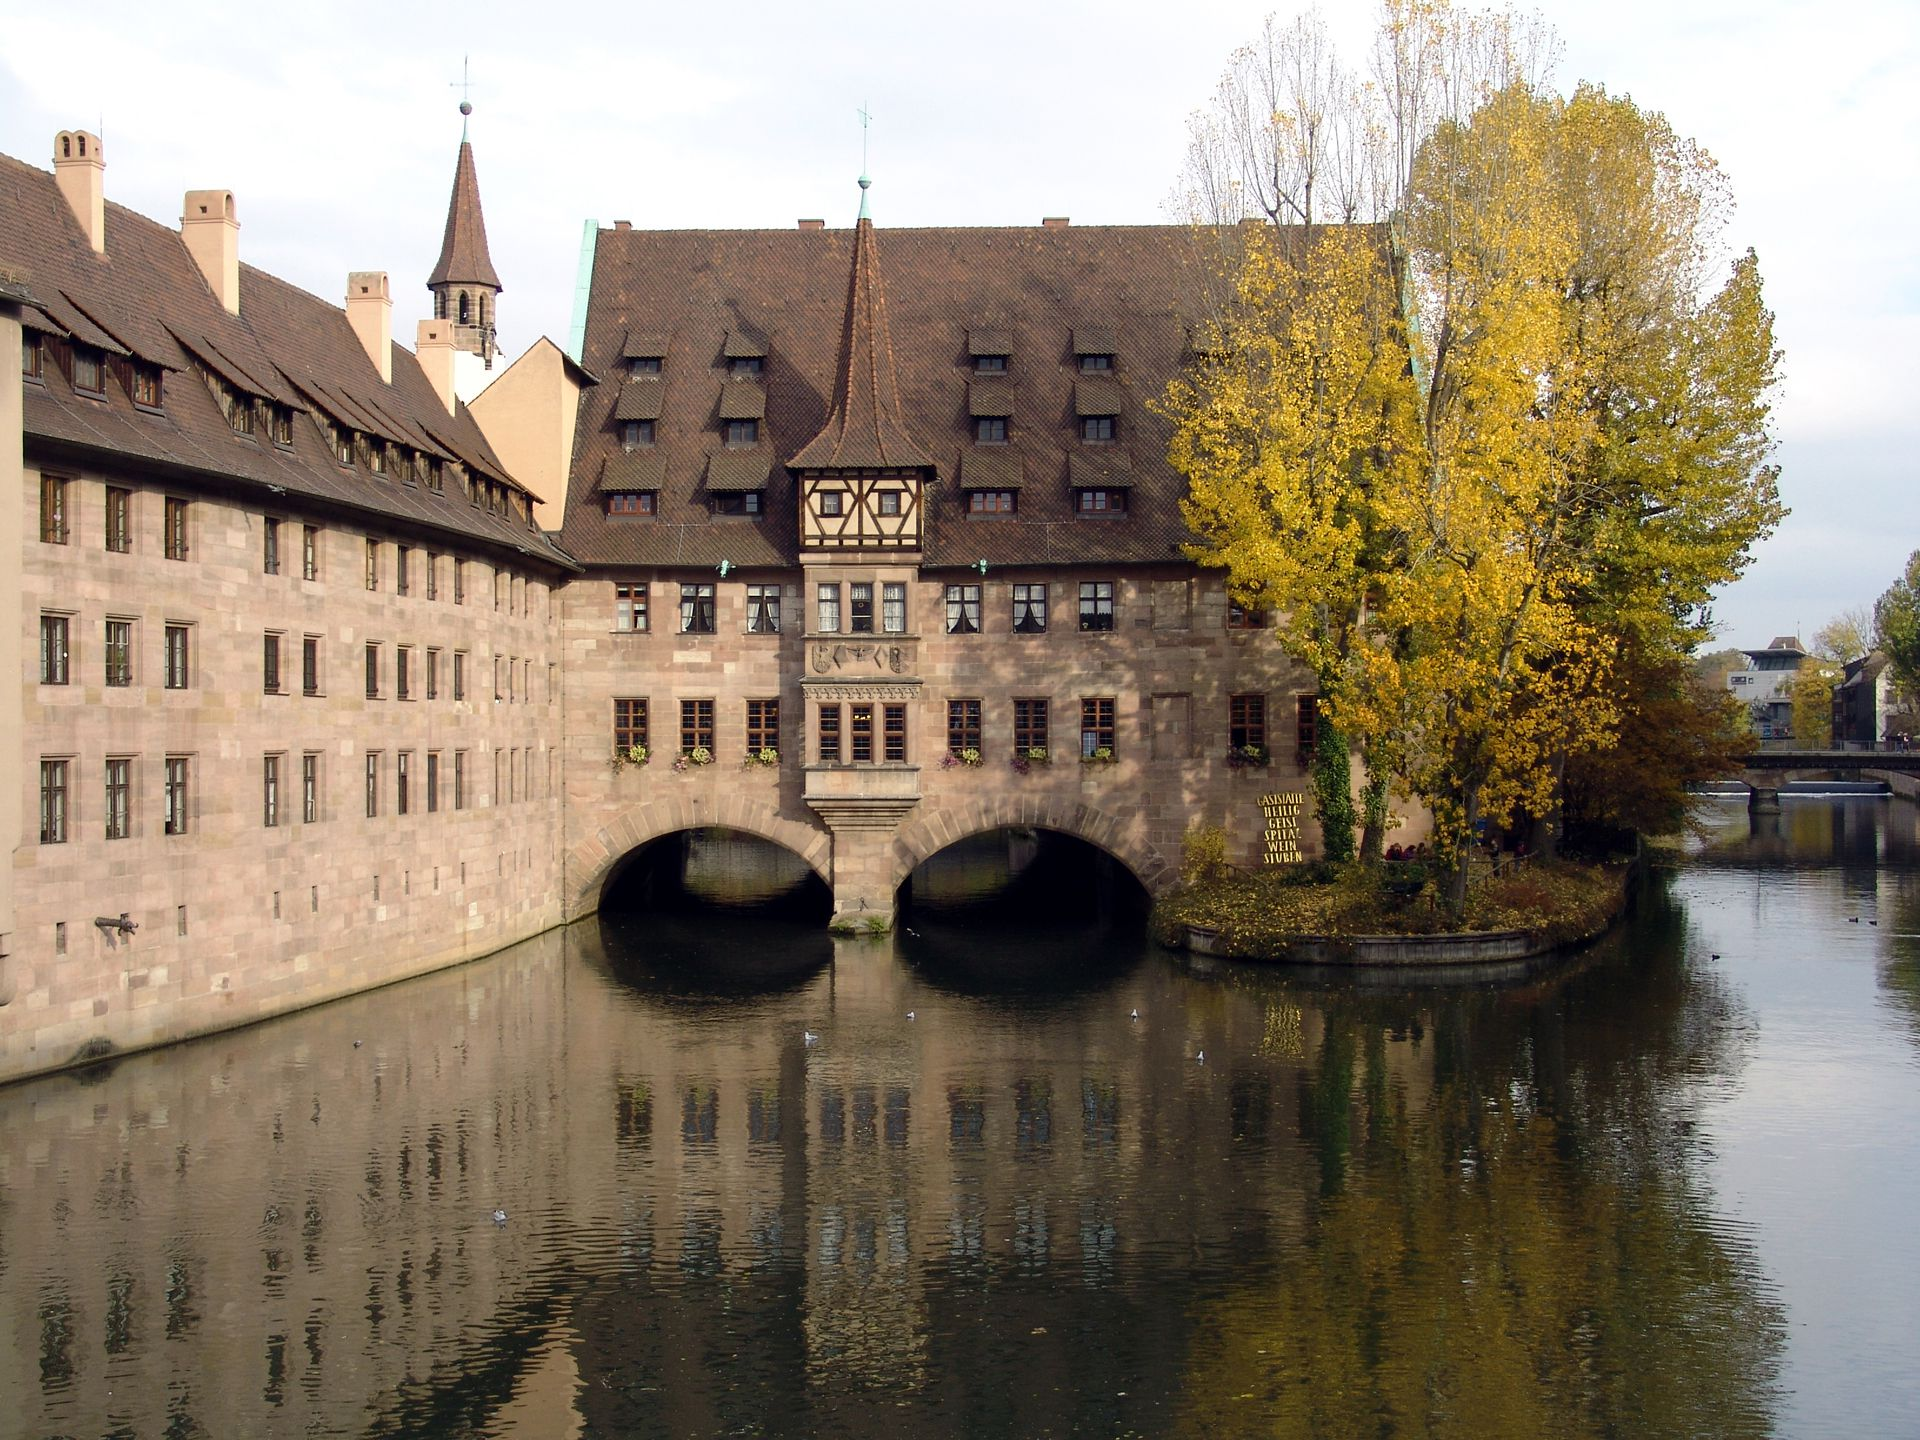 Hospice of the Holy Spirit Building spanning the river Pegnitz, originally communal ward for the invalids and ill persons (now a restaurant)